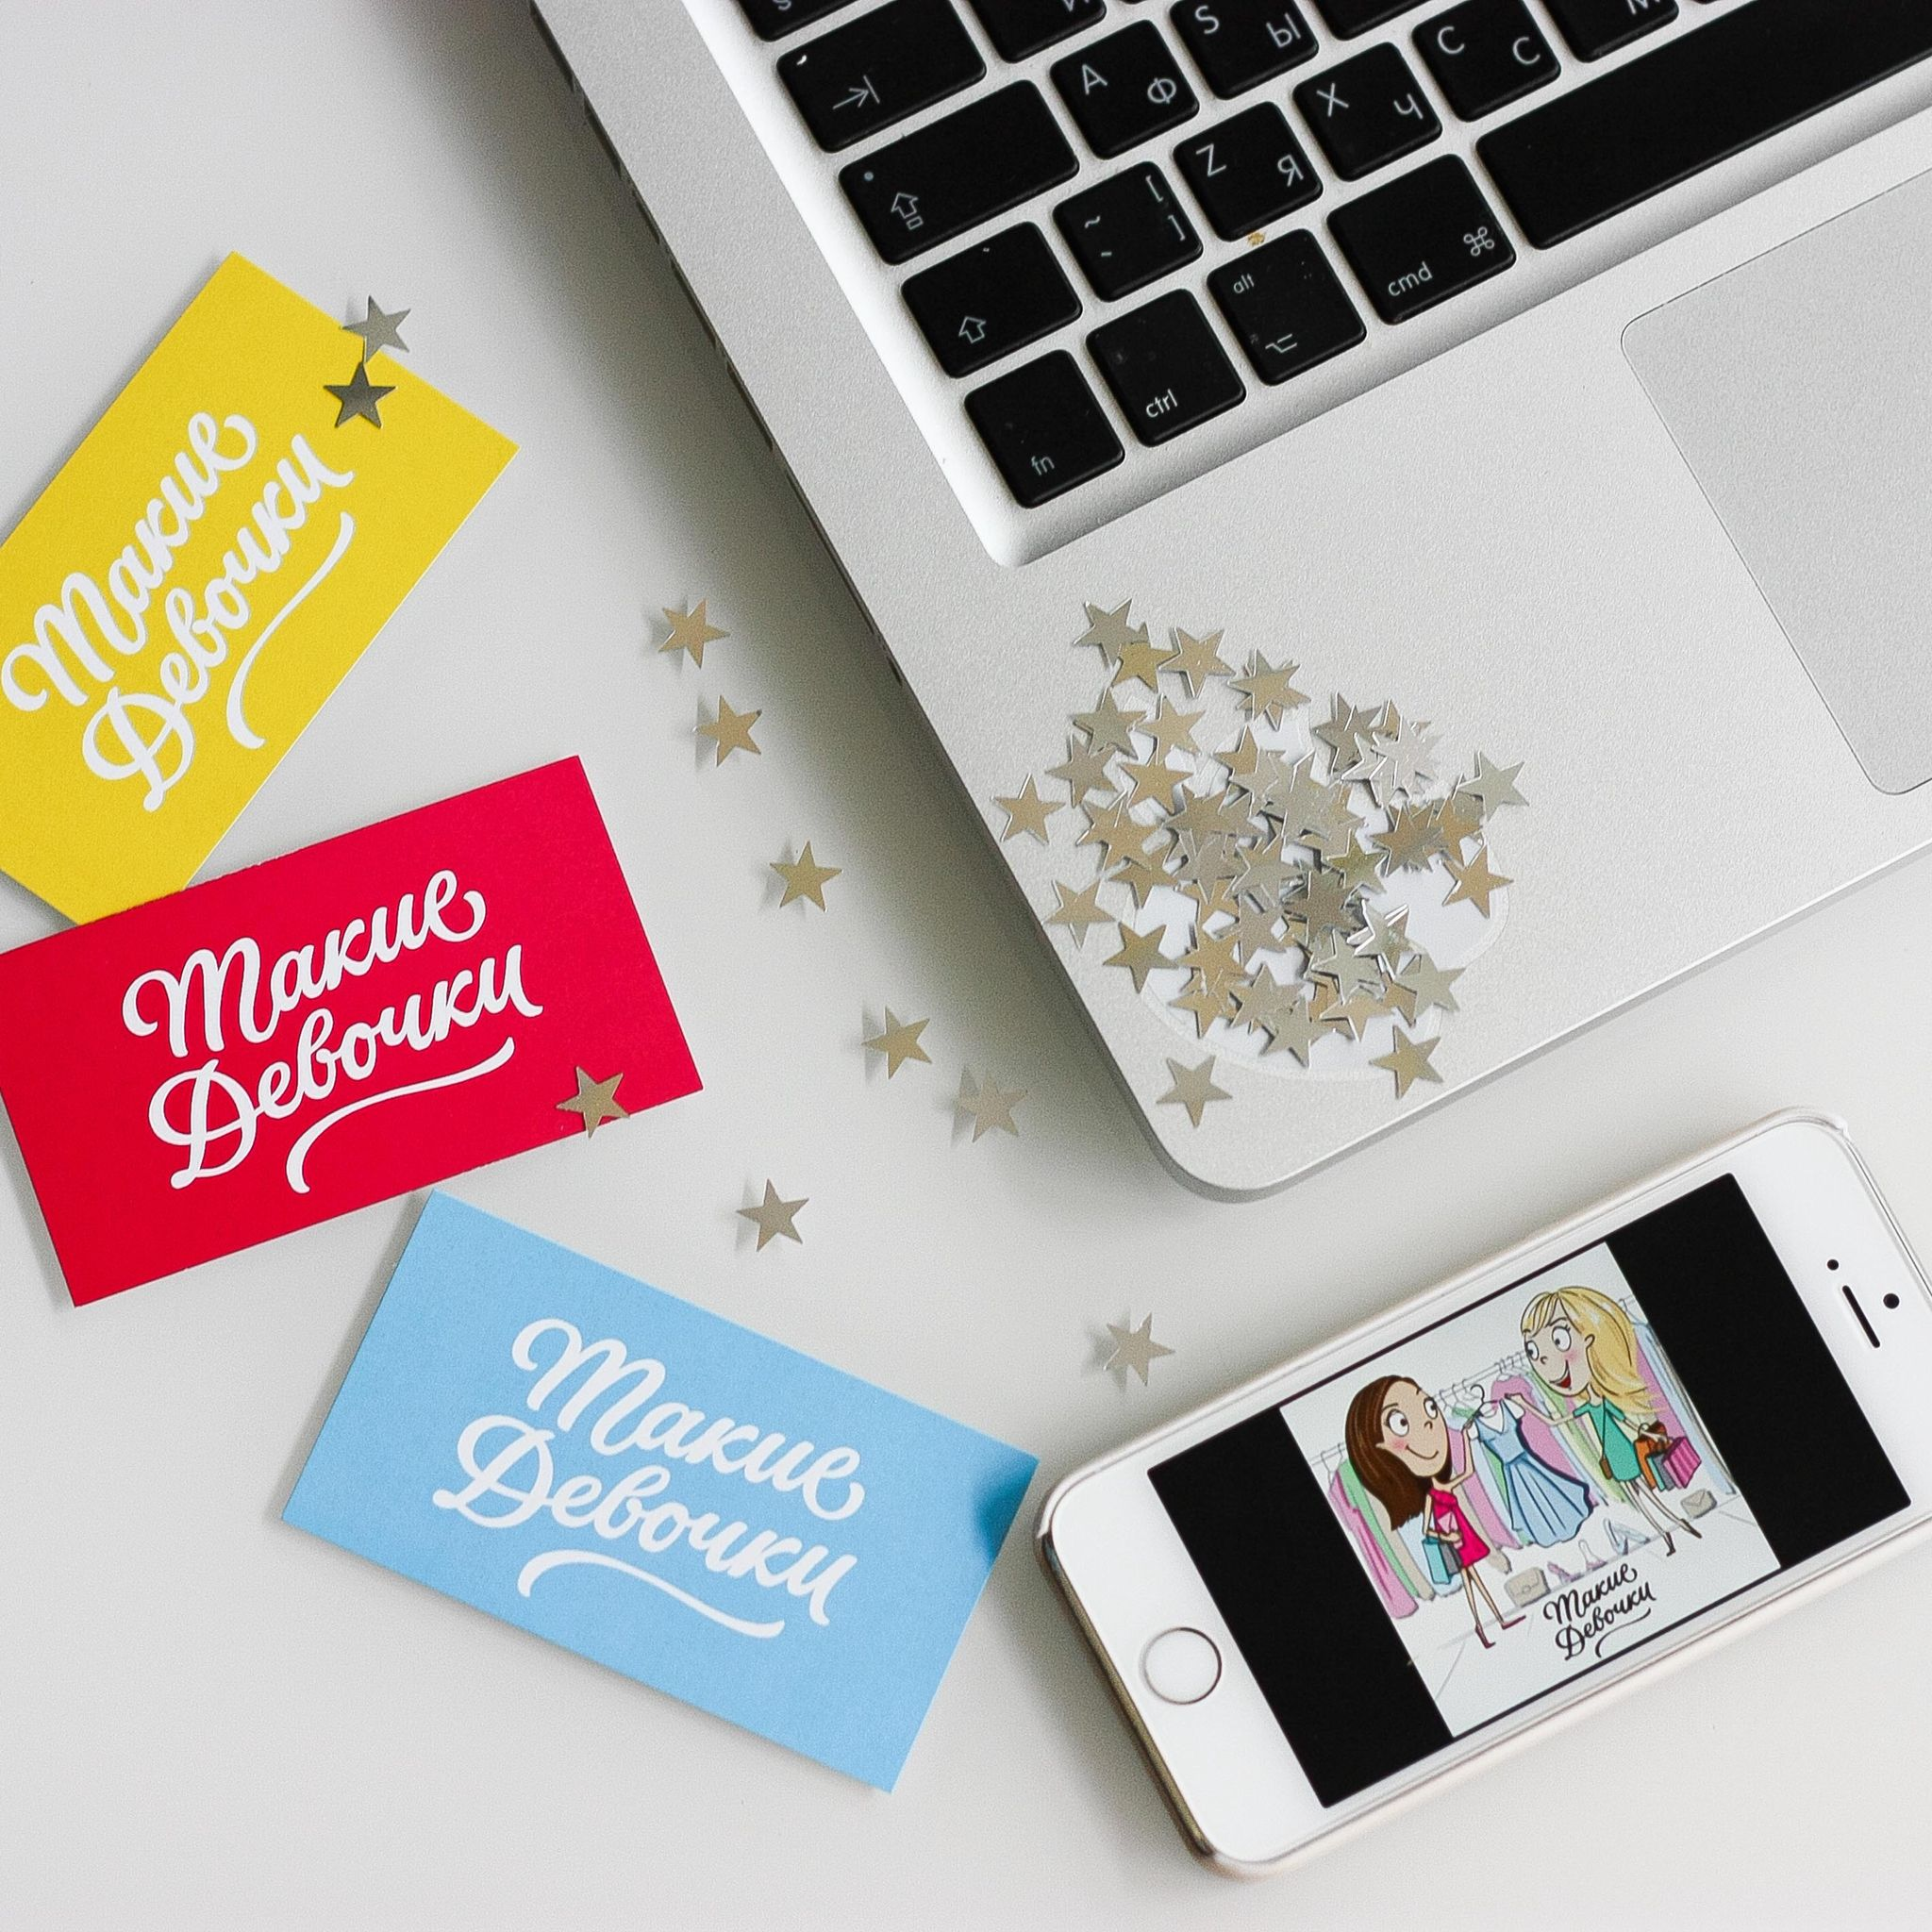 Macbook laptop business card just pictures pinterest macbook laptop business card reheart Choice Image